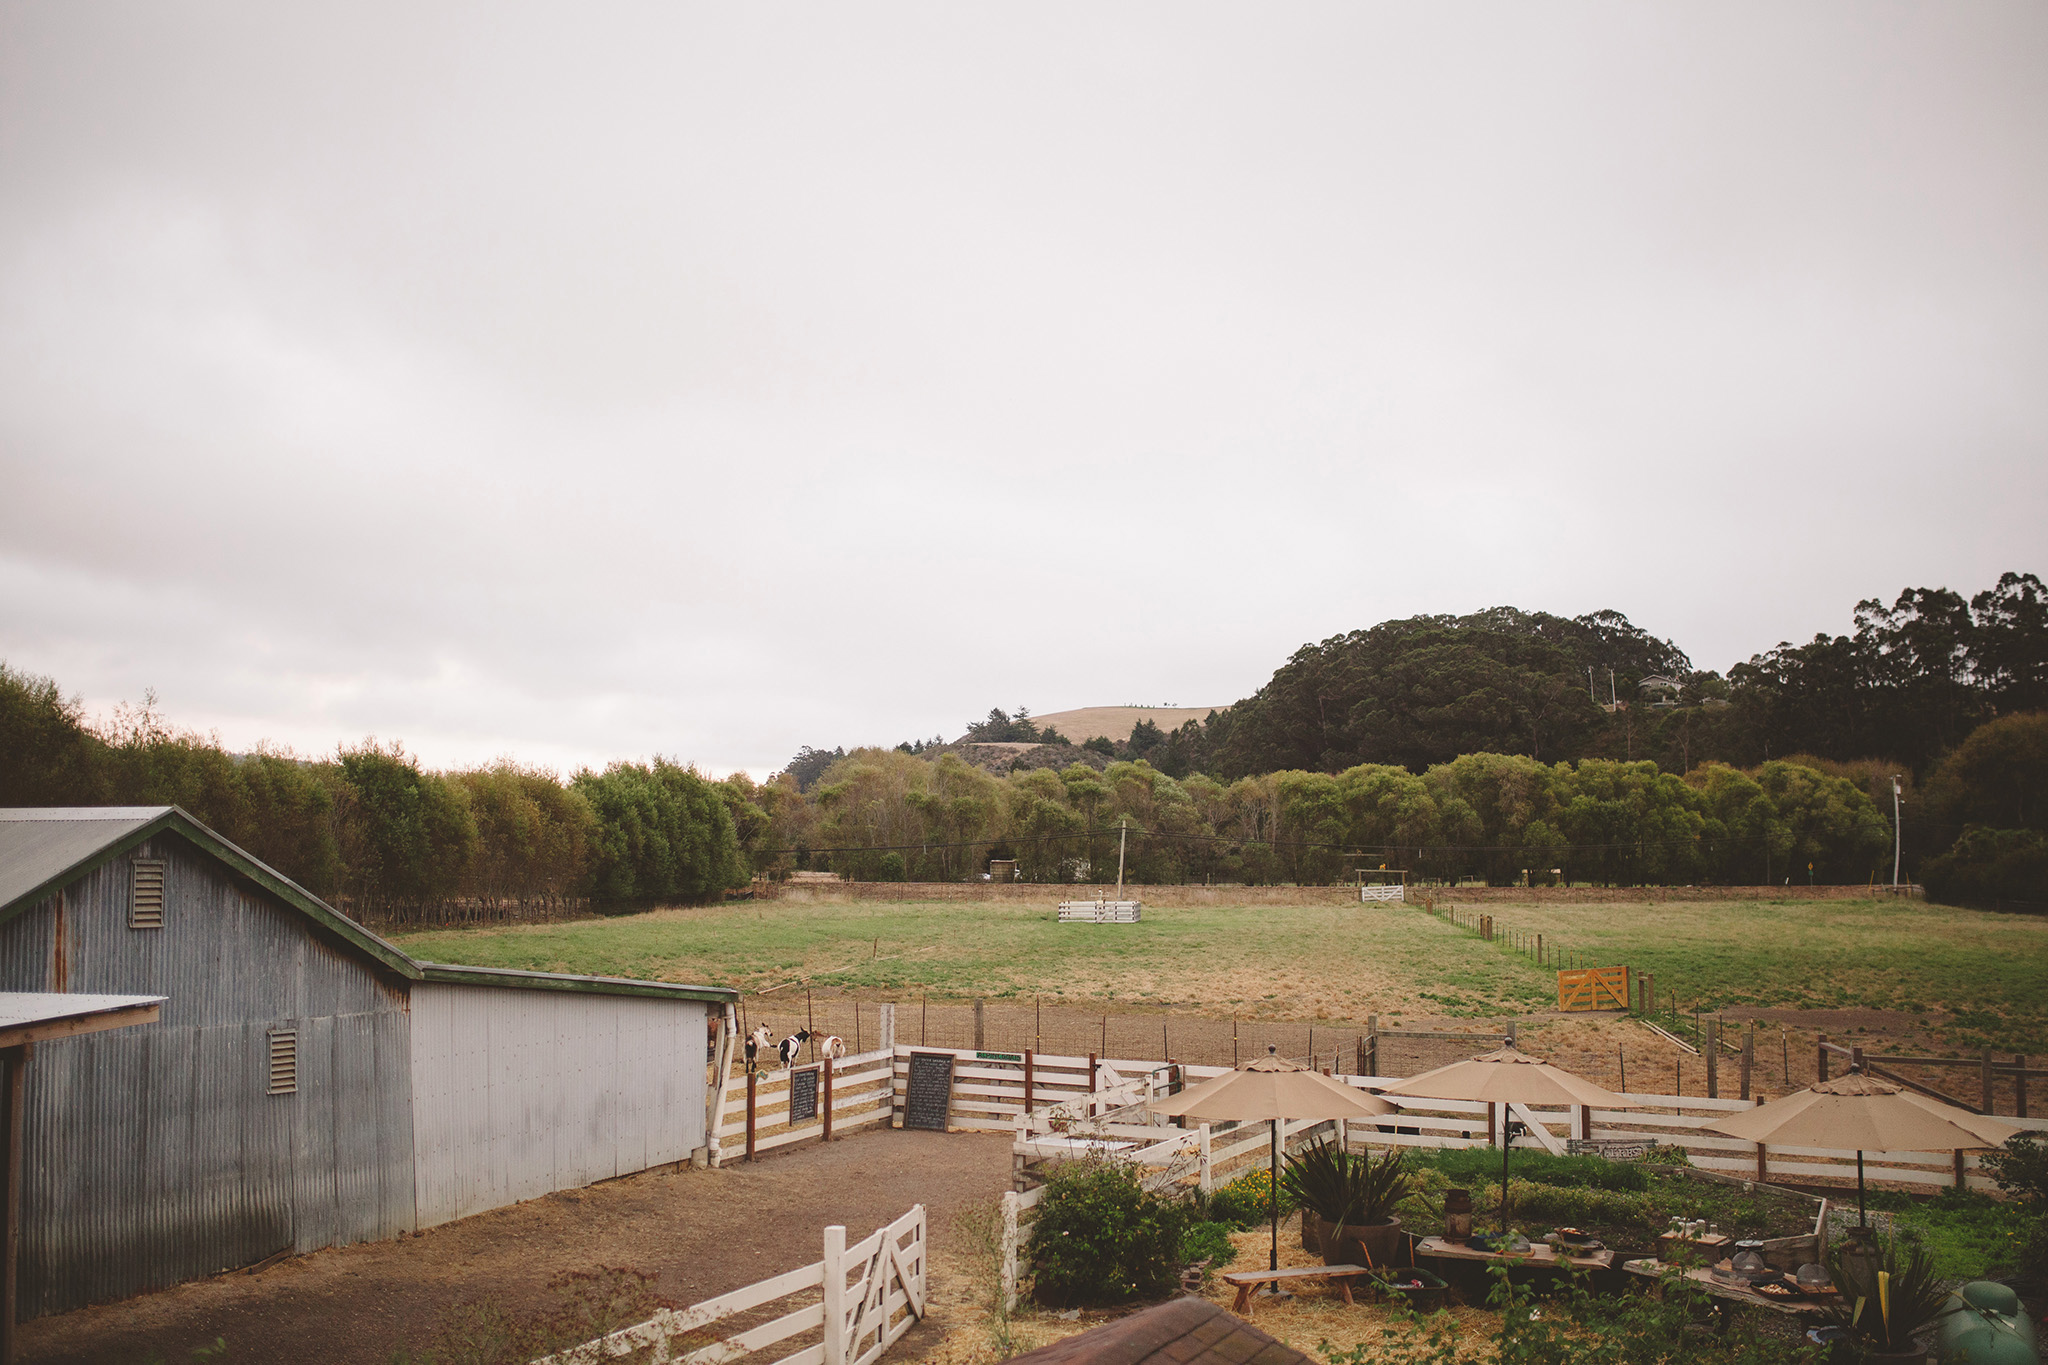 Harley goat farm wedding pictures in Pescadero california